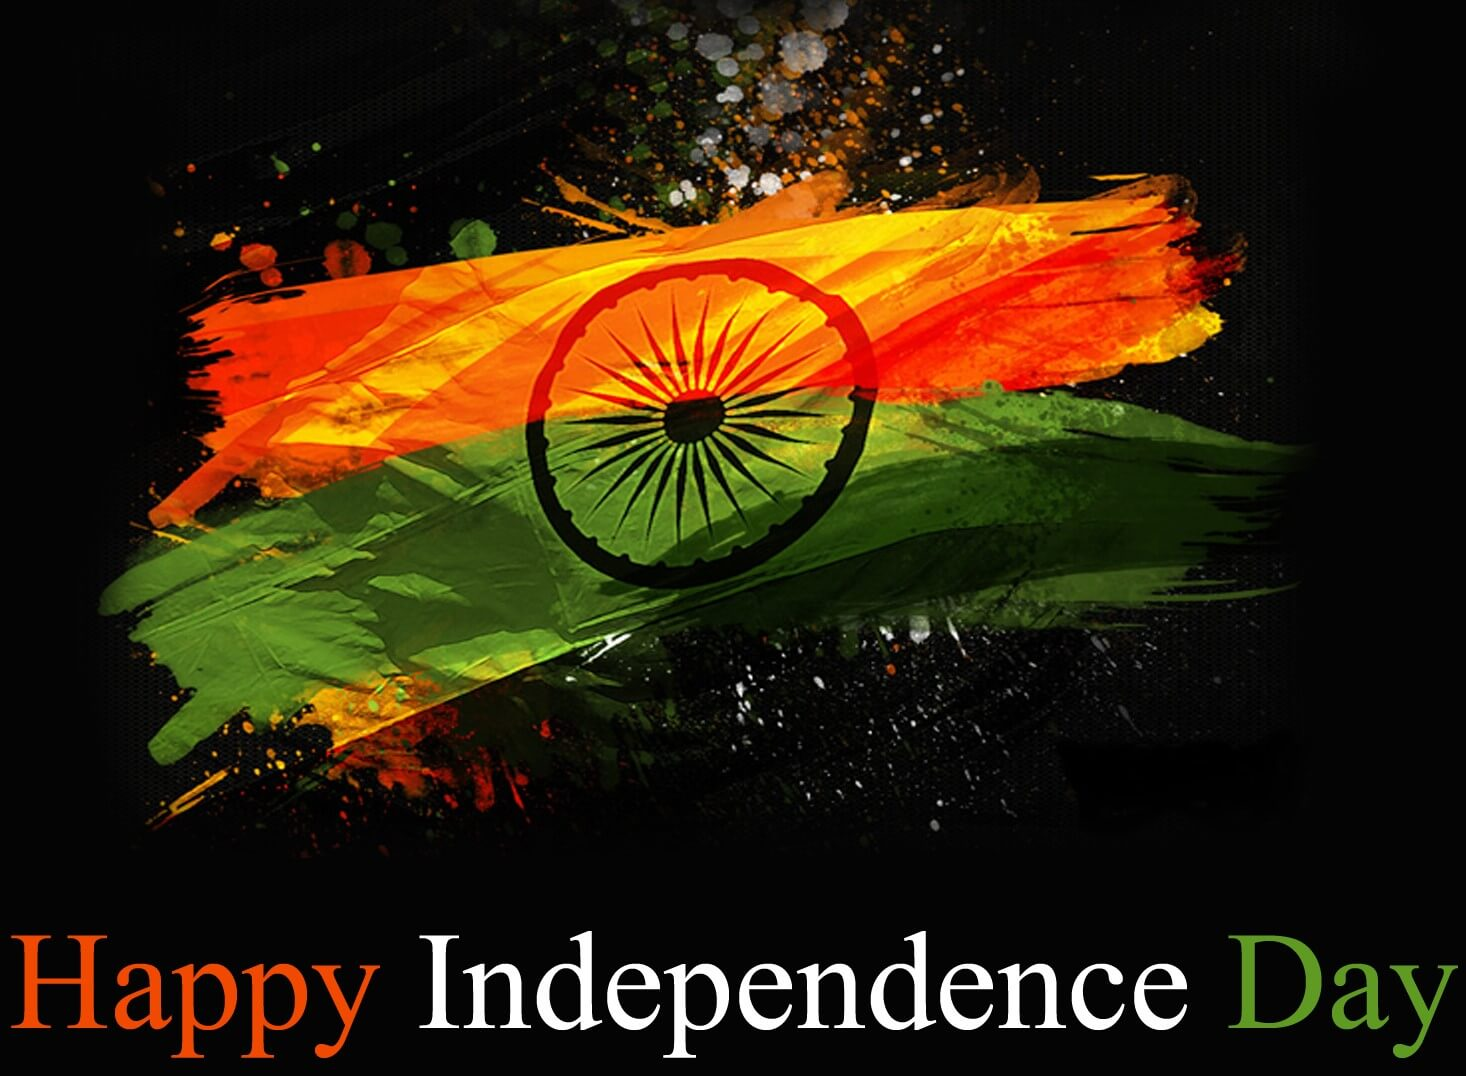 independence day speech for teacher Remember, this is a speech celebrating india's independence day and the  audience is your school principal, teachers and fellow students.